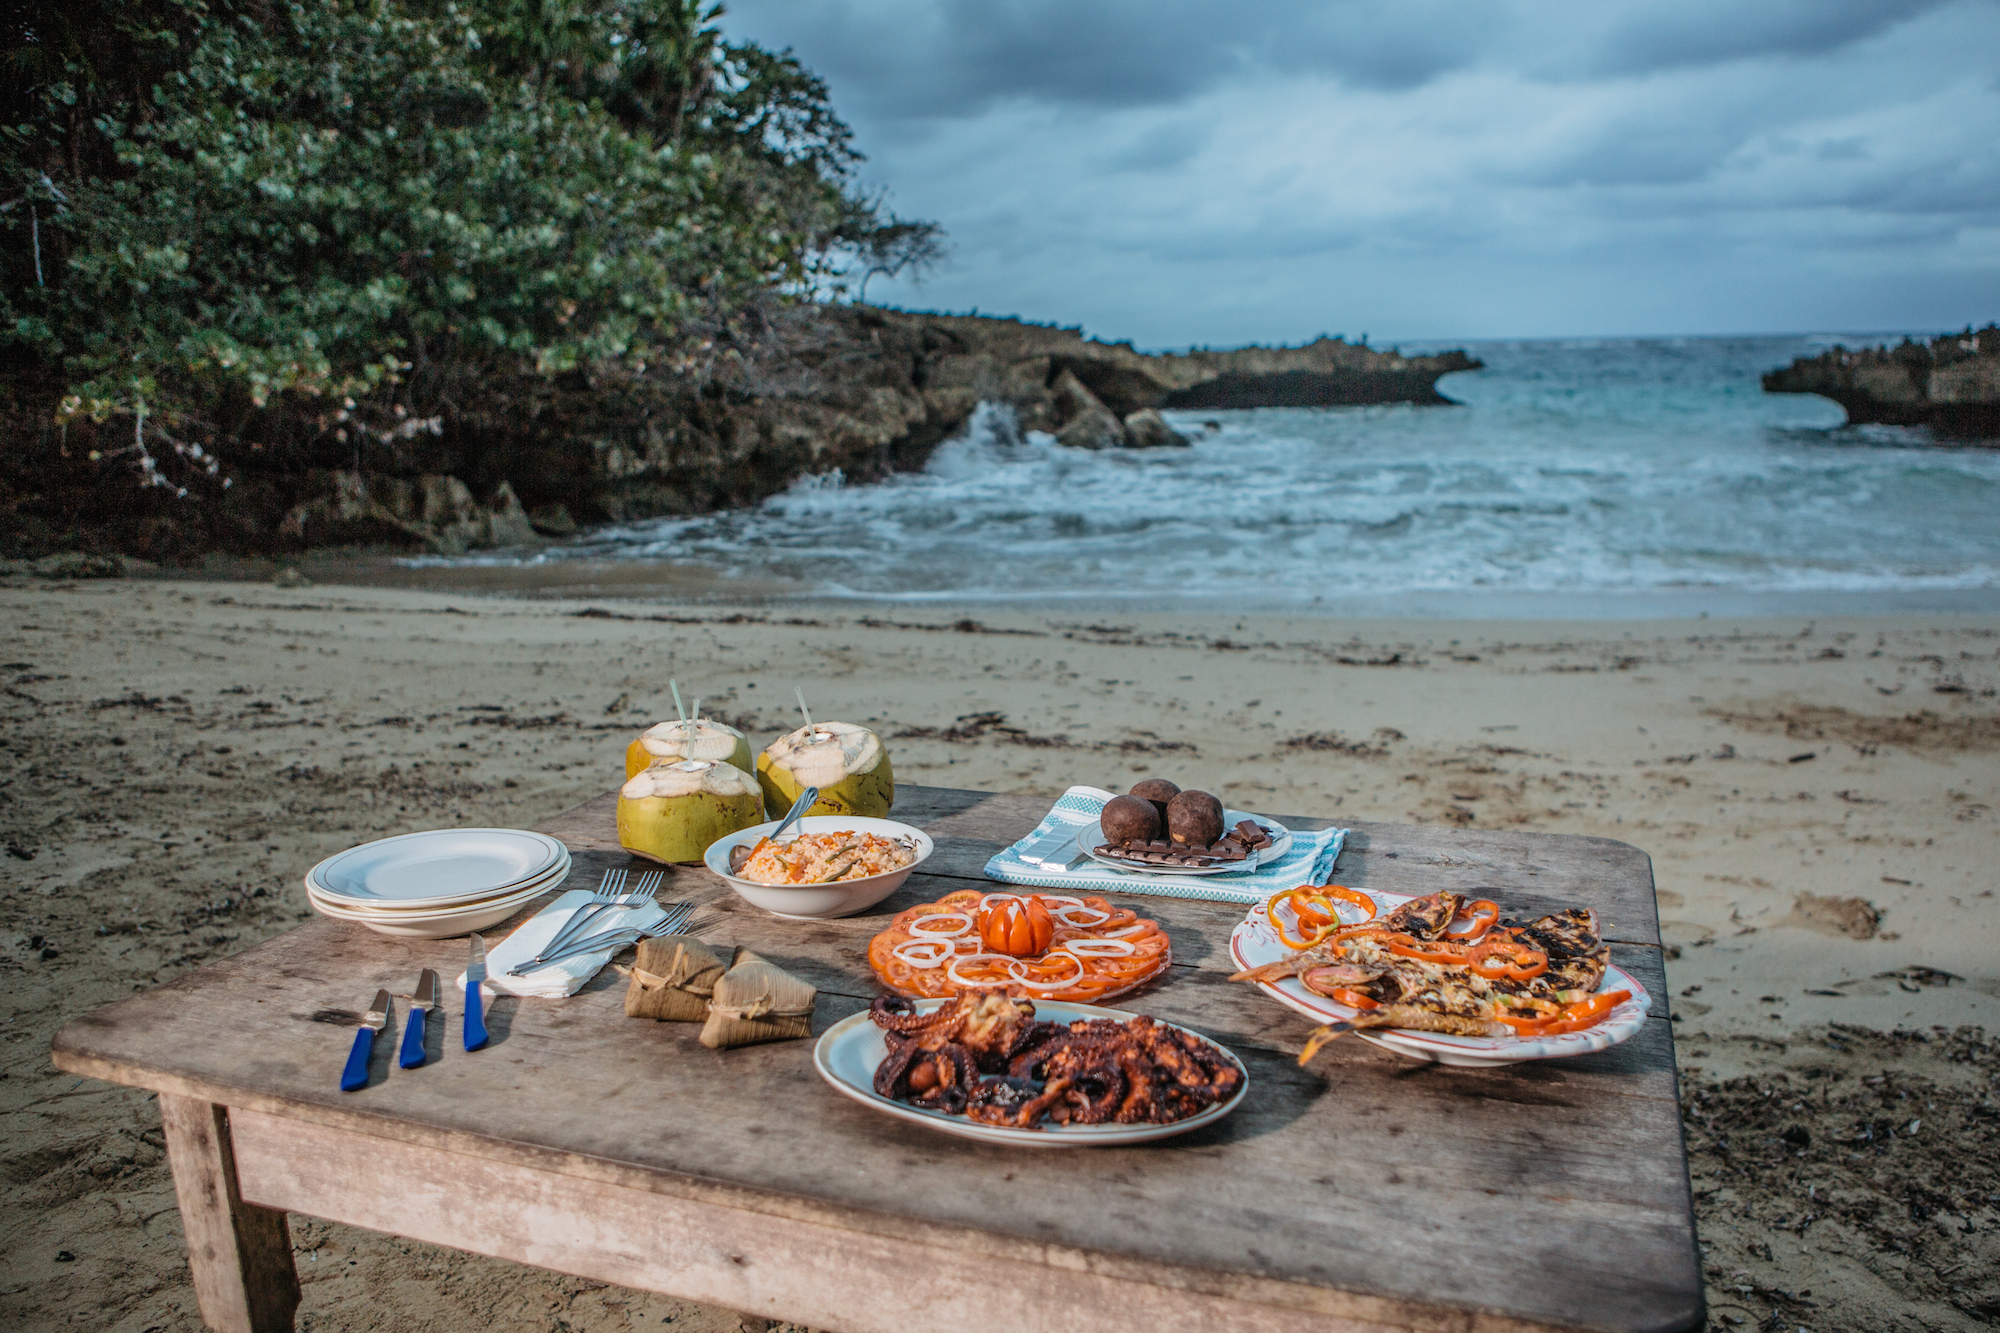 This Documentary Seeks to Recover Cuba's Delicious, But Forgotten Culinary History